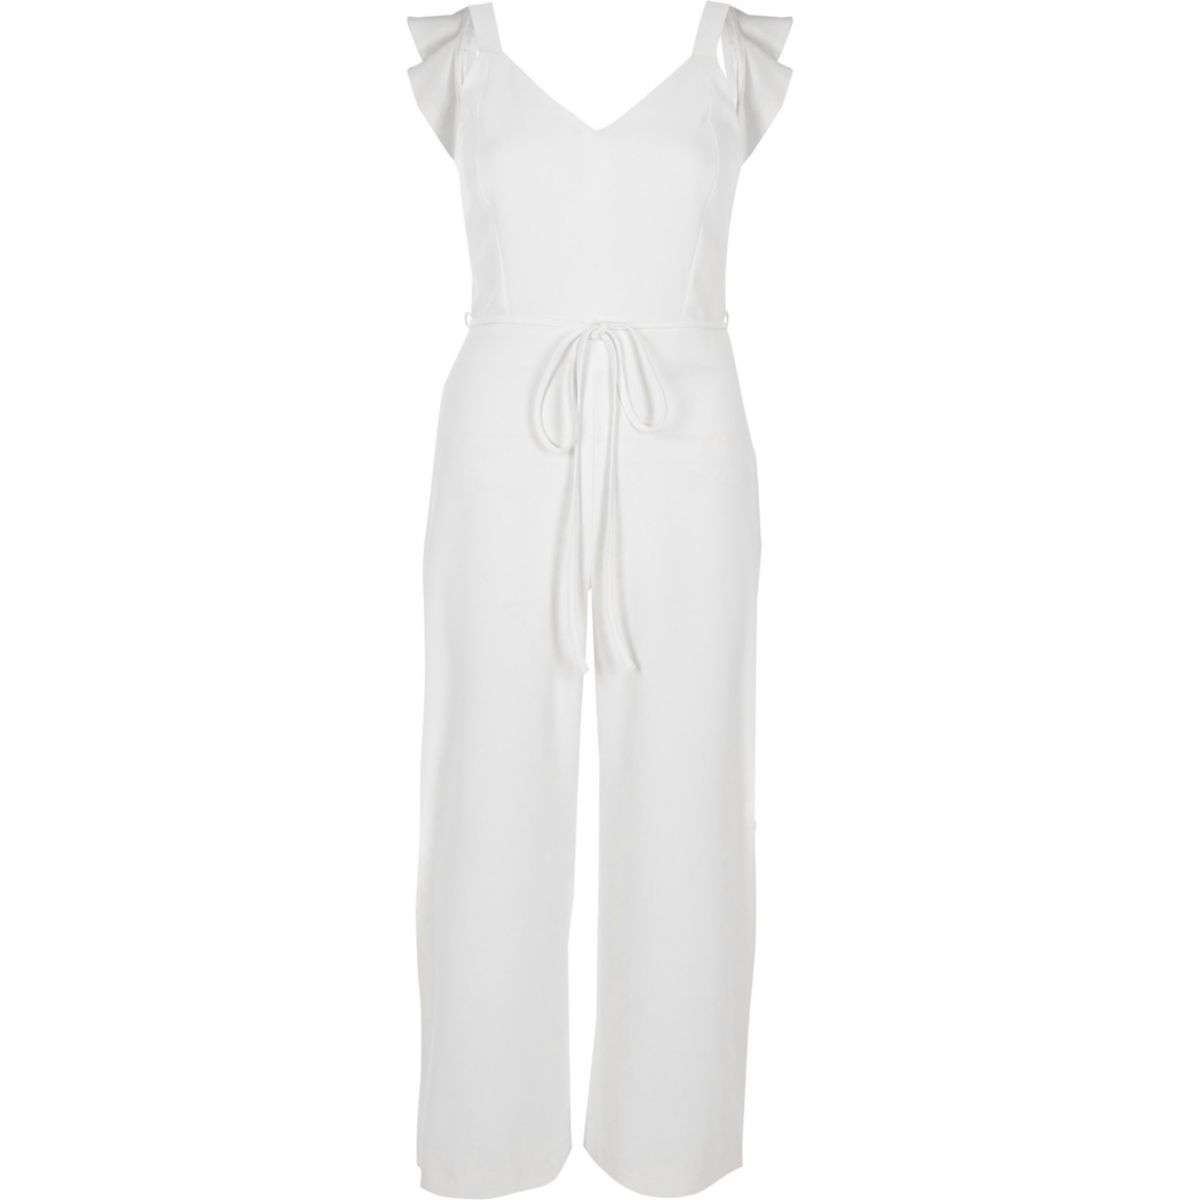 White back bow sleeveless culotte jumpsuit